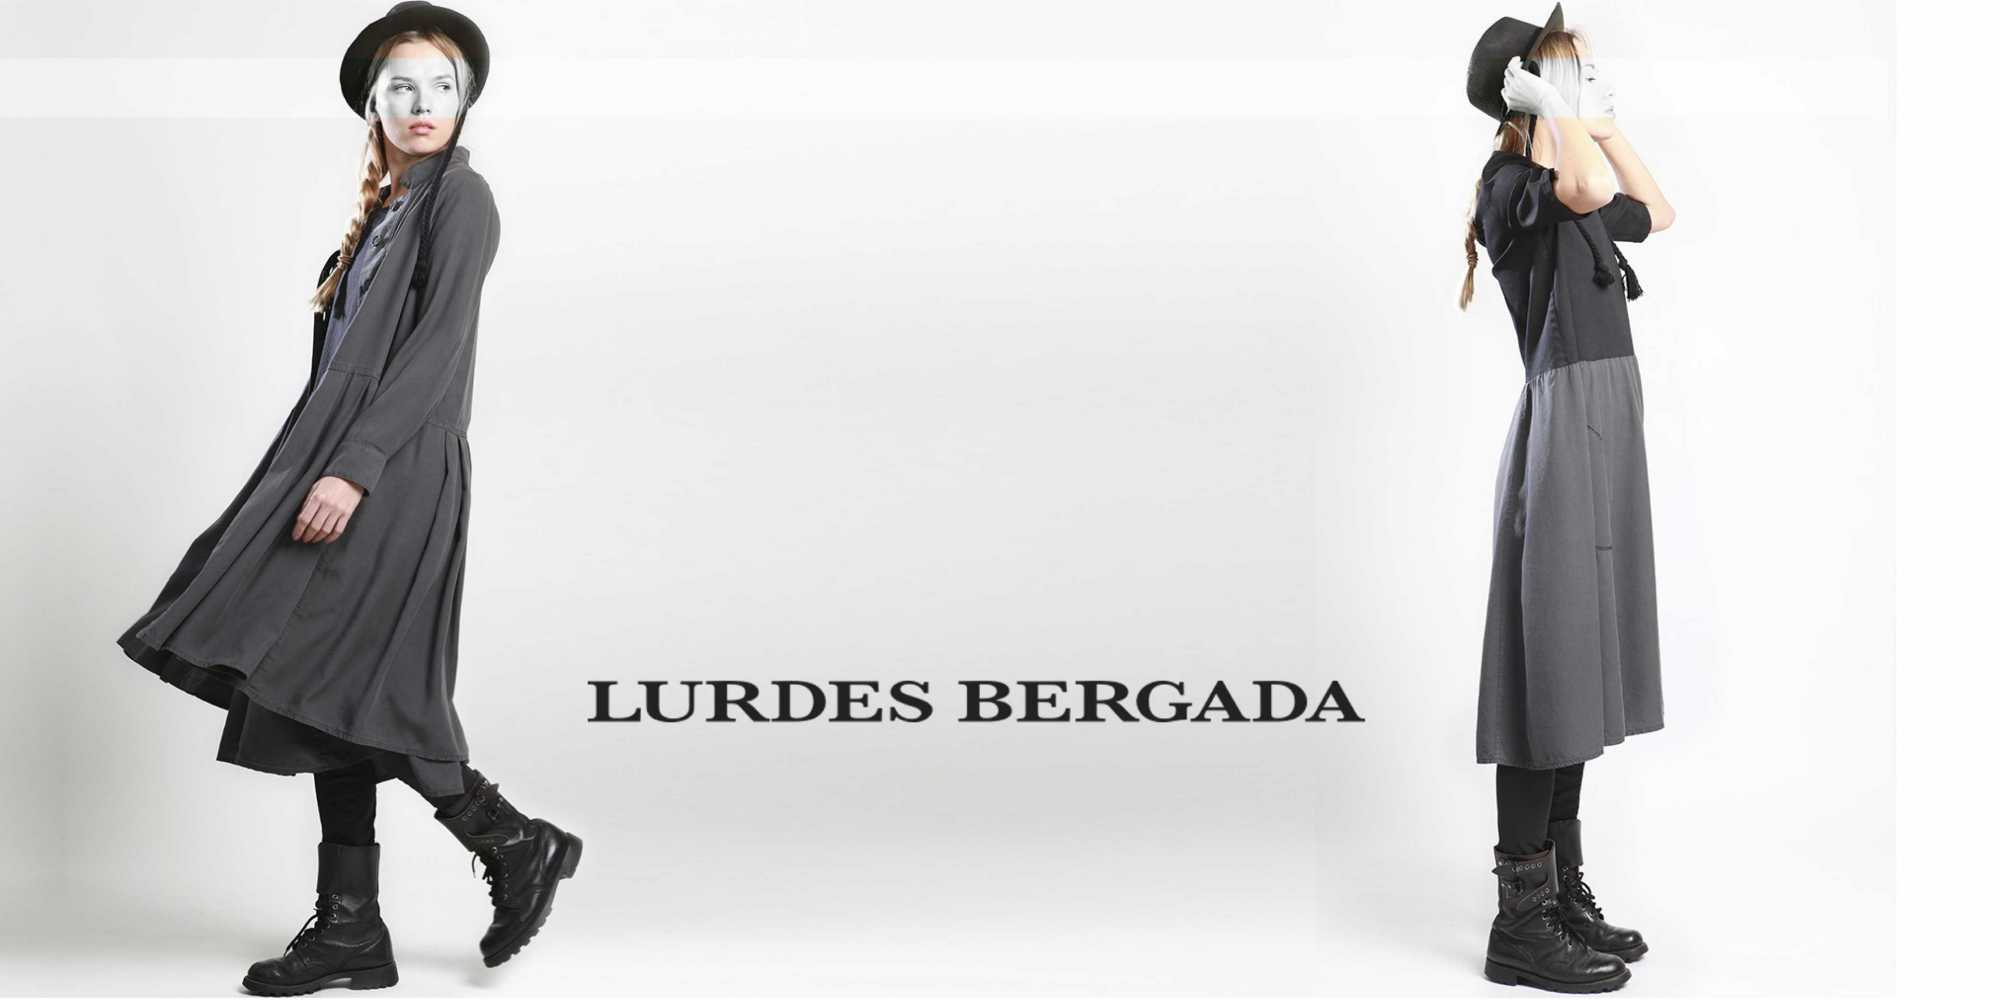 Lurdes Bergada @ Walkers.Style online women's fashion and clothing shop - We are proud to offer this amazing label \'Lurdes Bergada\' from Barcelona, Spain.